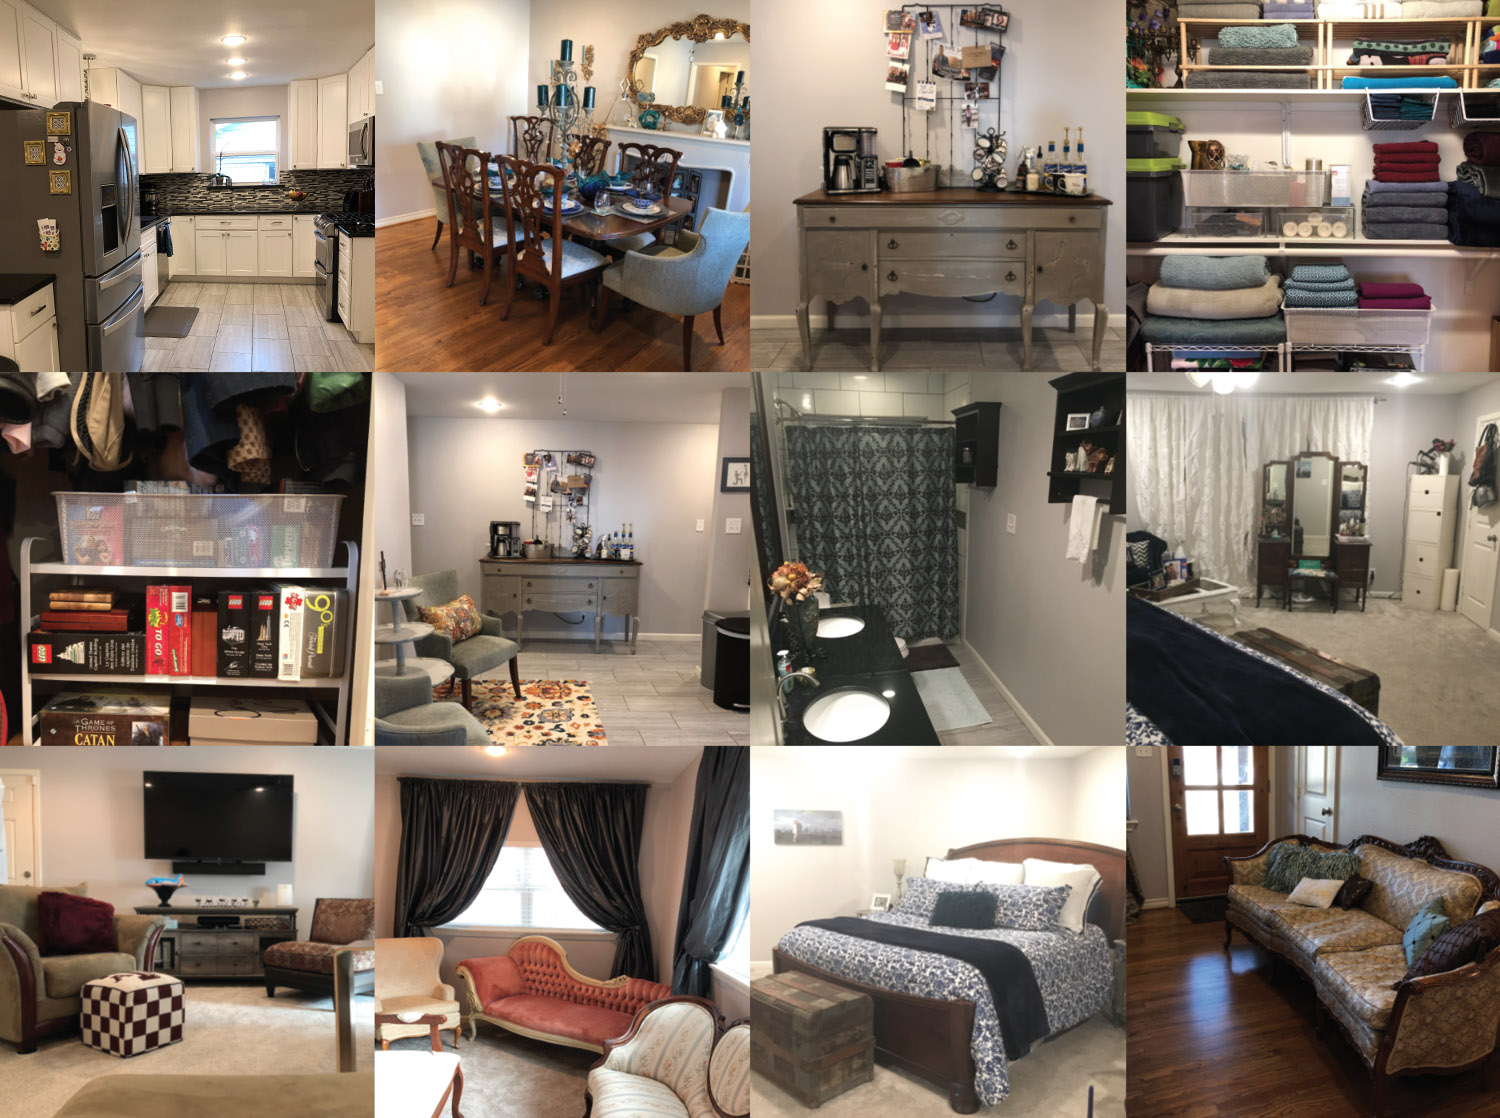 COMPLETE house organization - Check out how we organized this entire house!